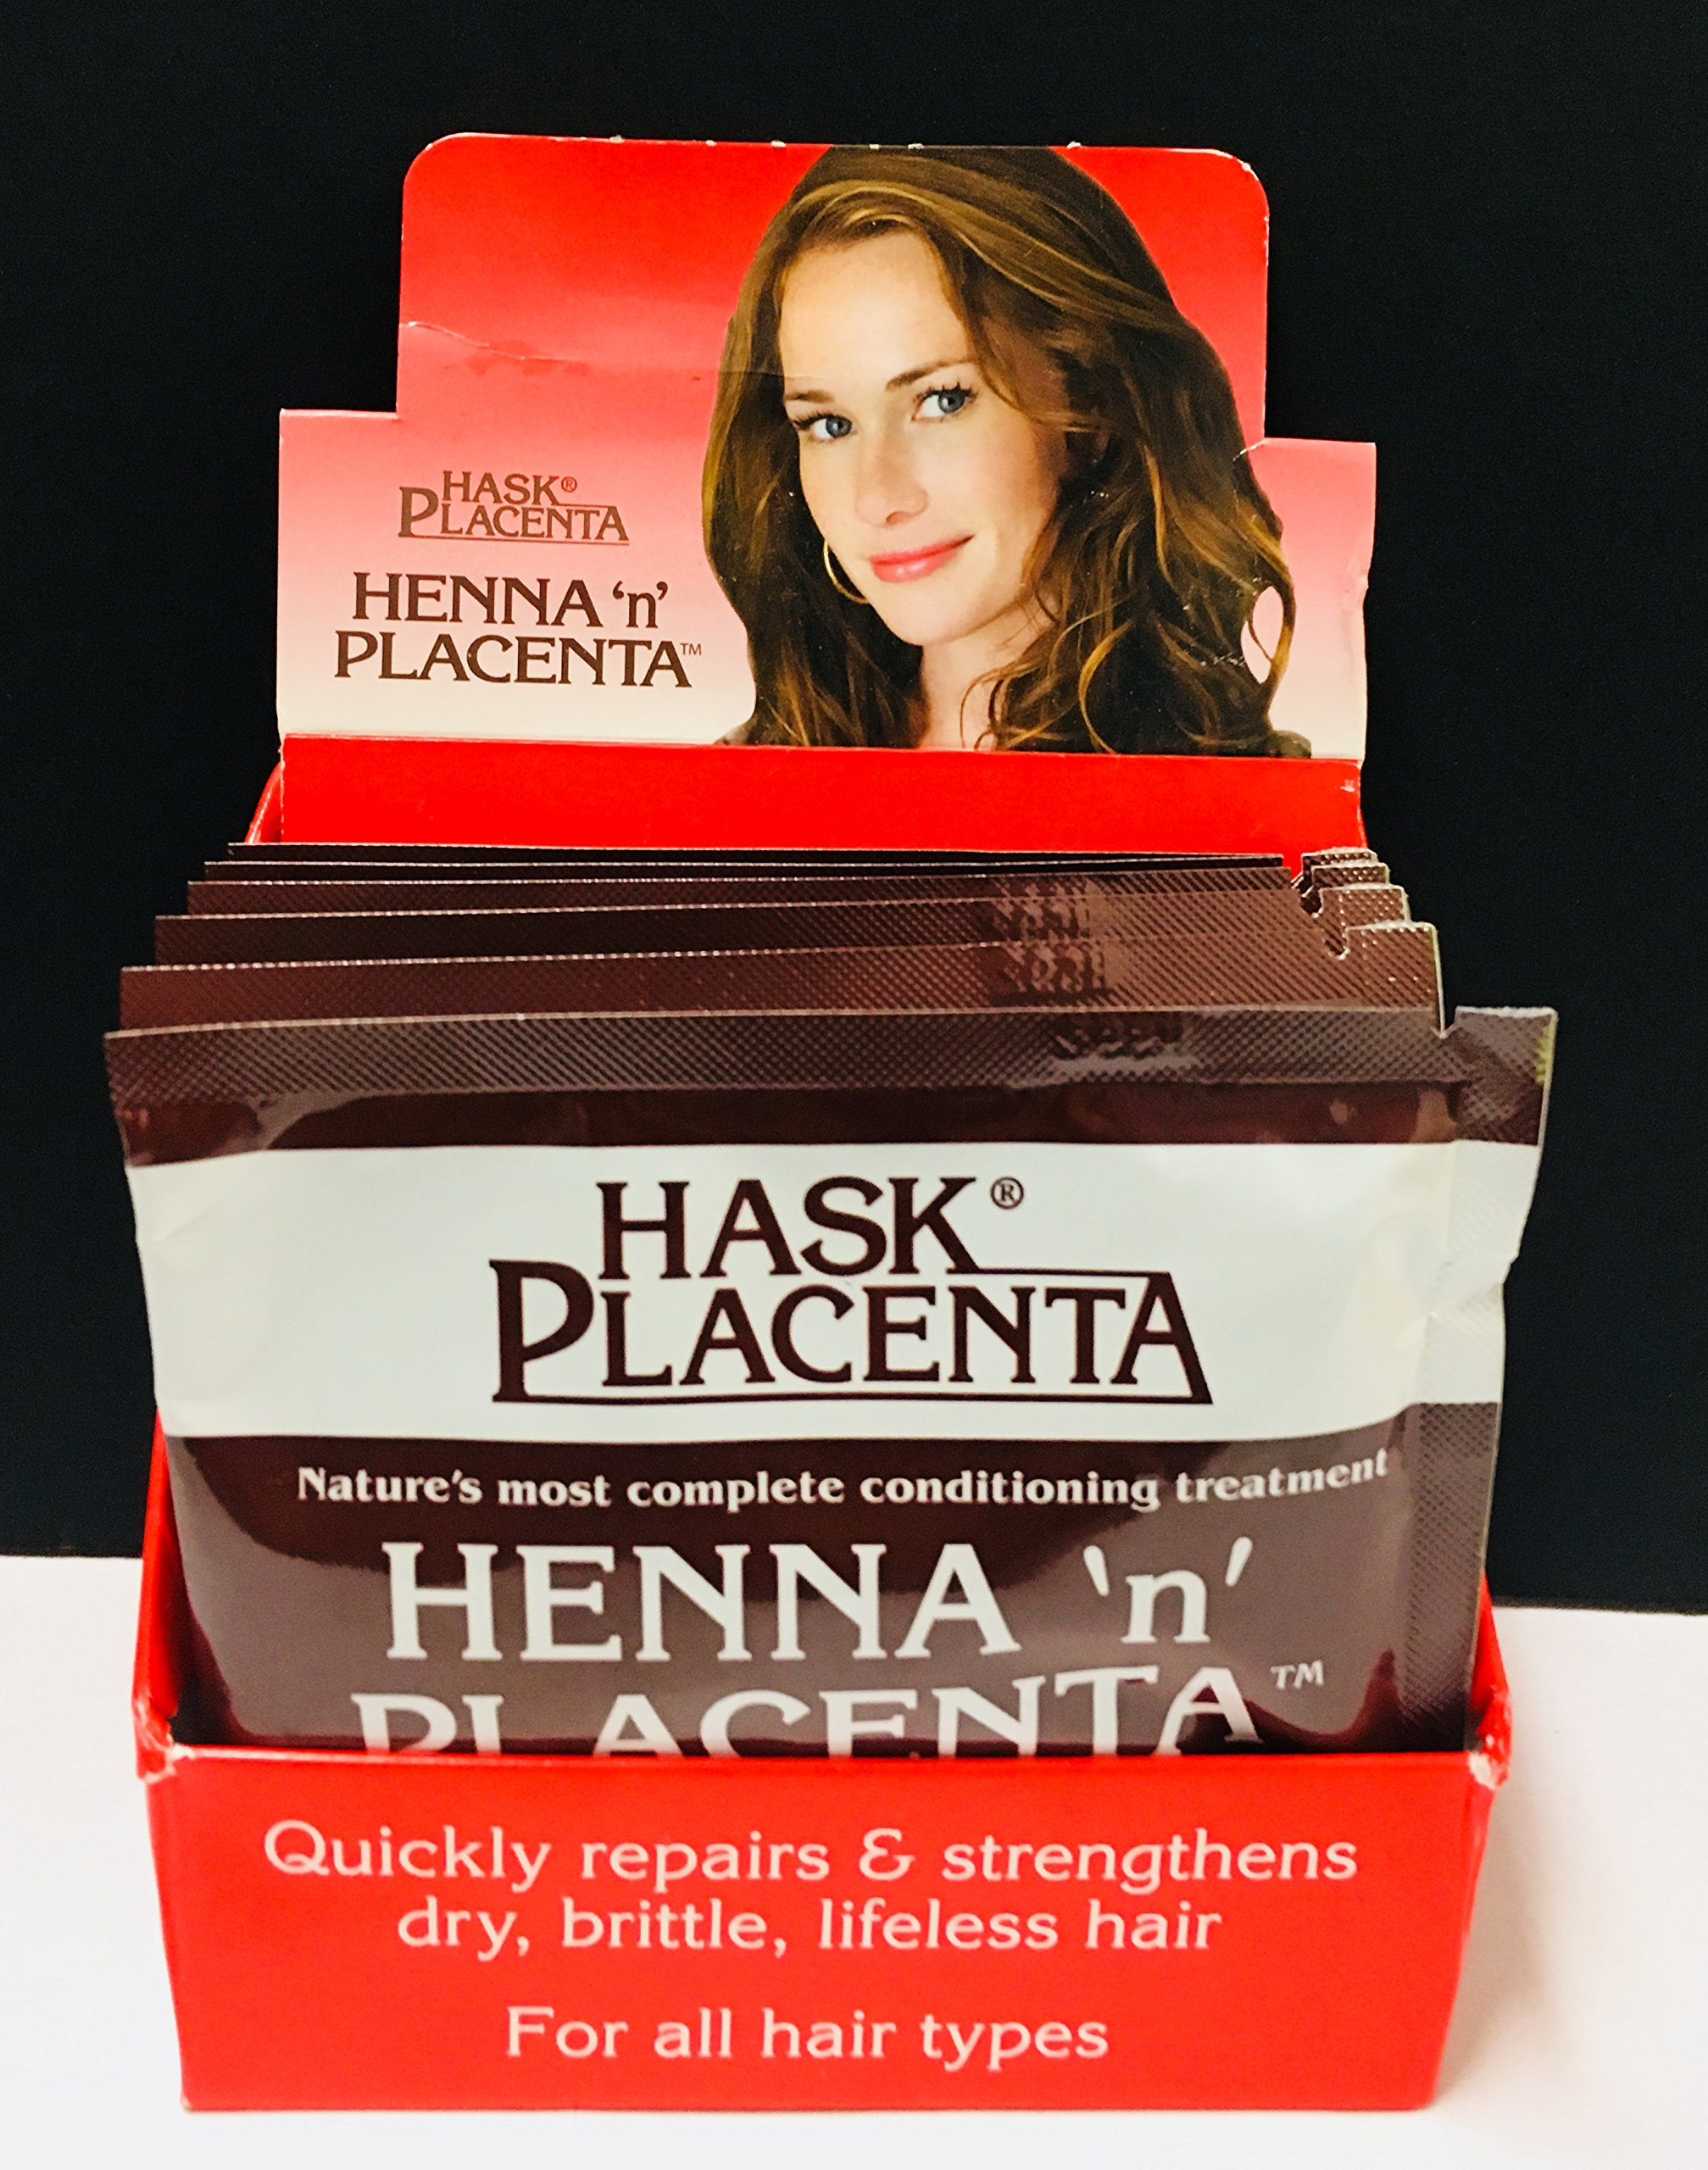 Hask Placenta Henna 'N' Placenta Conditioning Treatment,Quickly Repair & Strengthens Dry,Brittle, Lifeless Hair ( Display of 6 Pks 2oz Eack. Pack.)